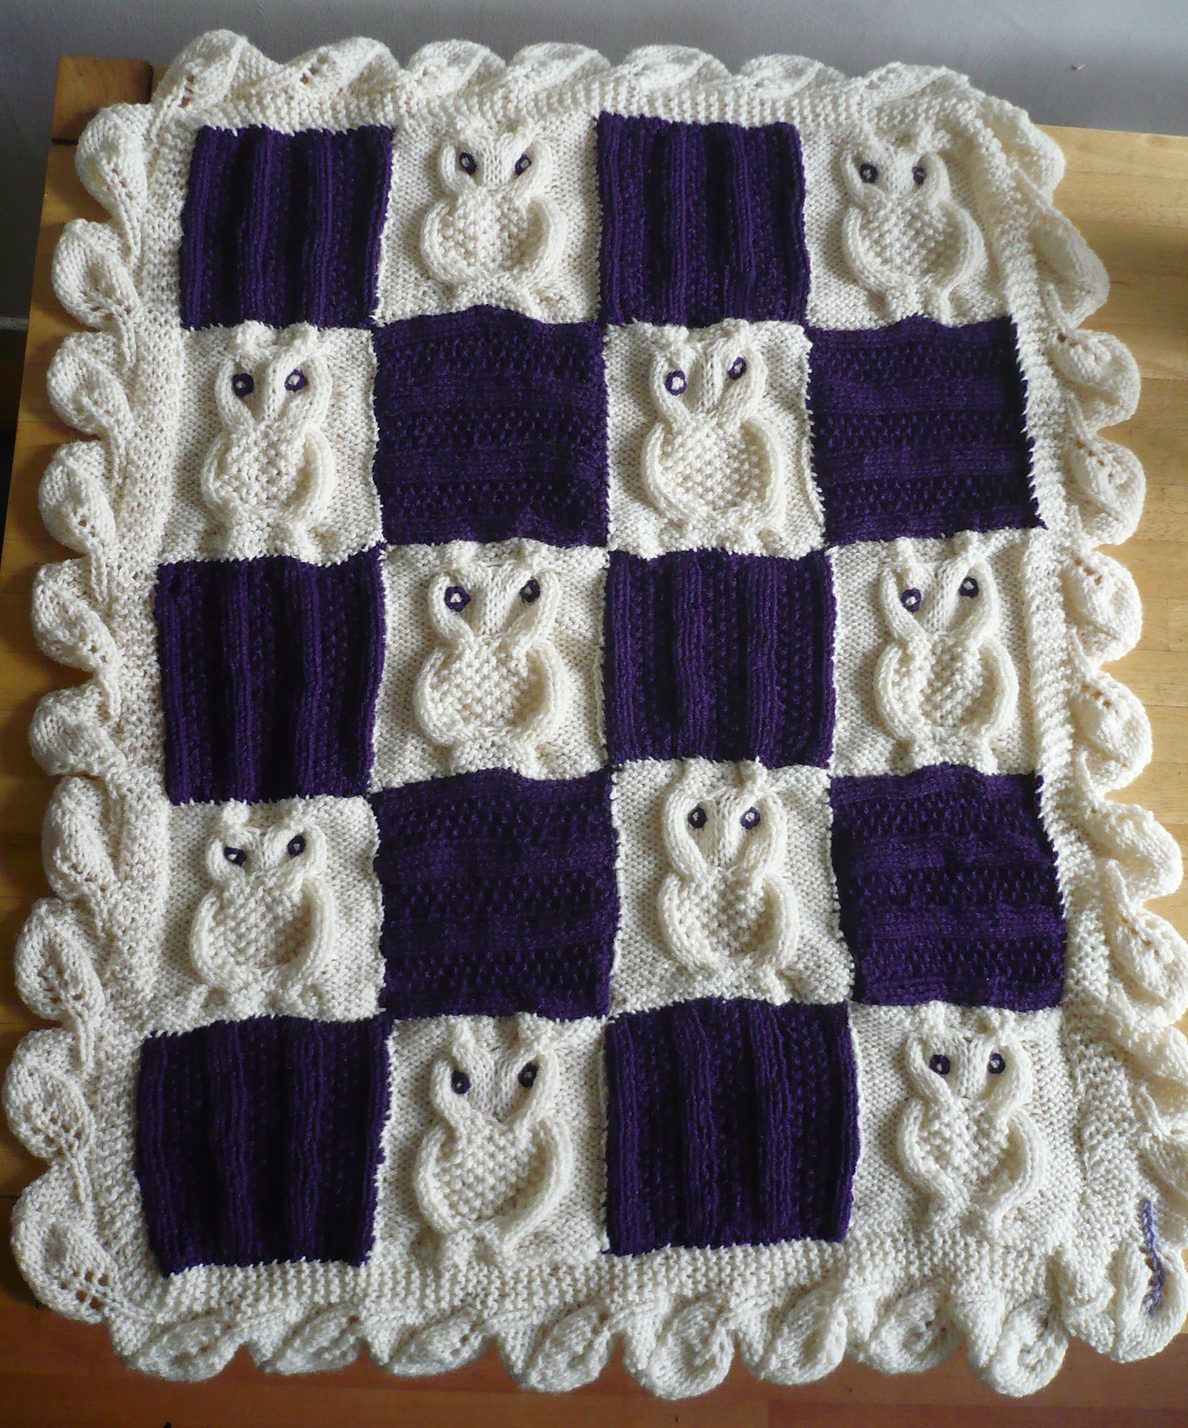 Free Knitting Pattern for Cable Owl Square | Colourful blankets ...